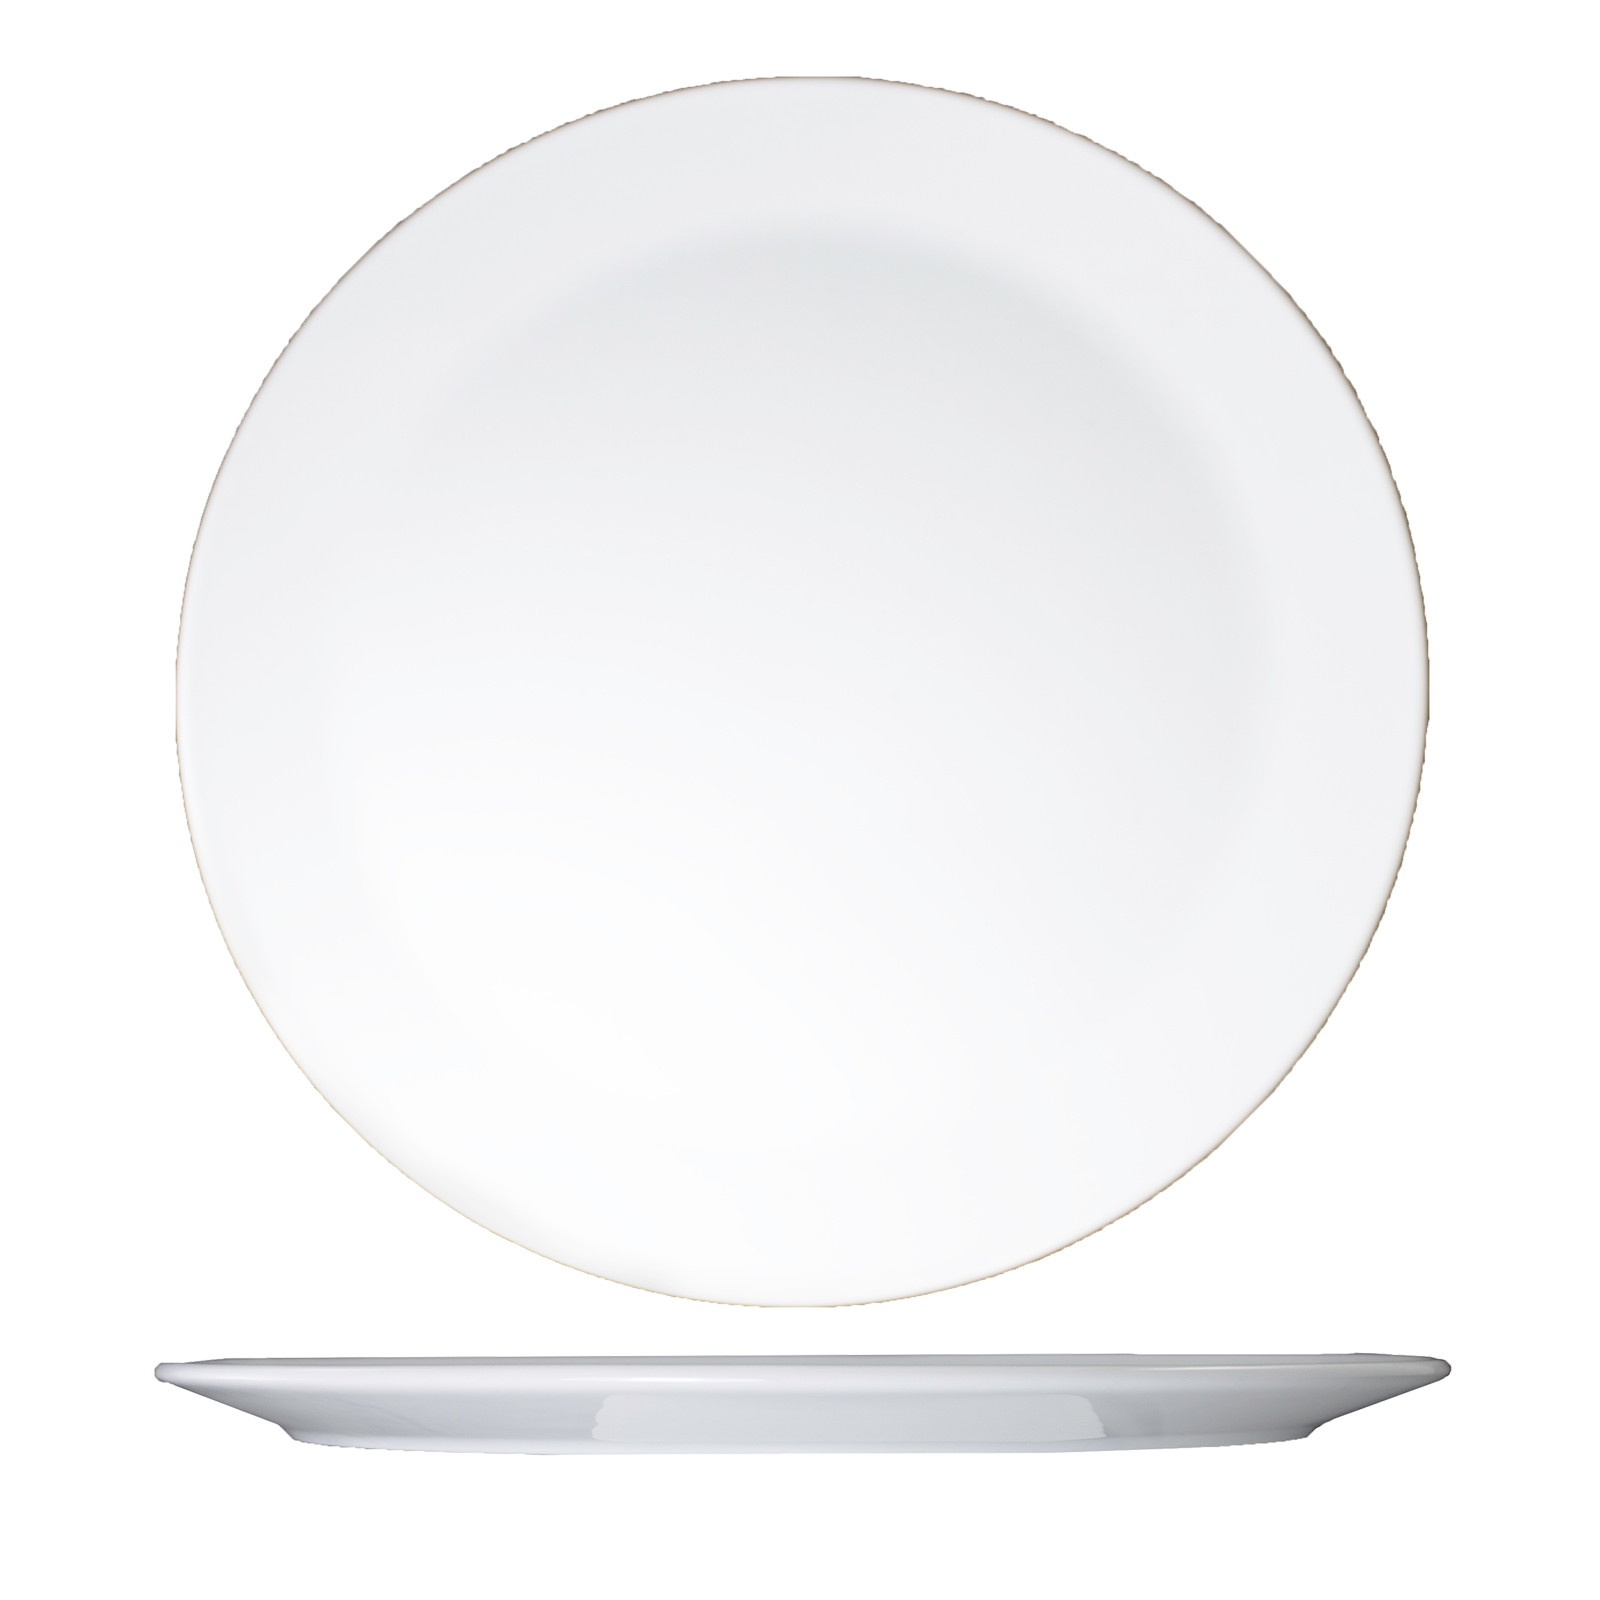 International Tableware PL-60 plate, china